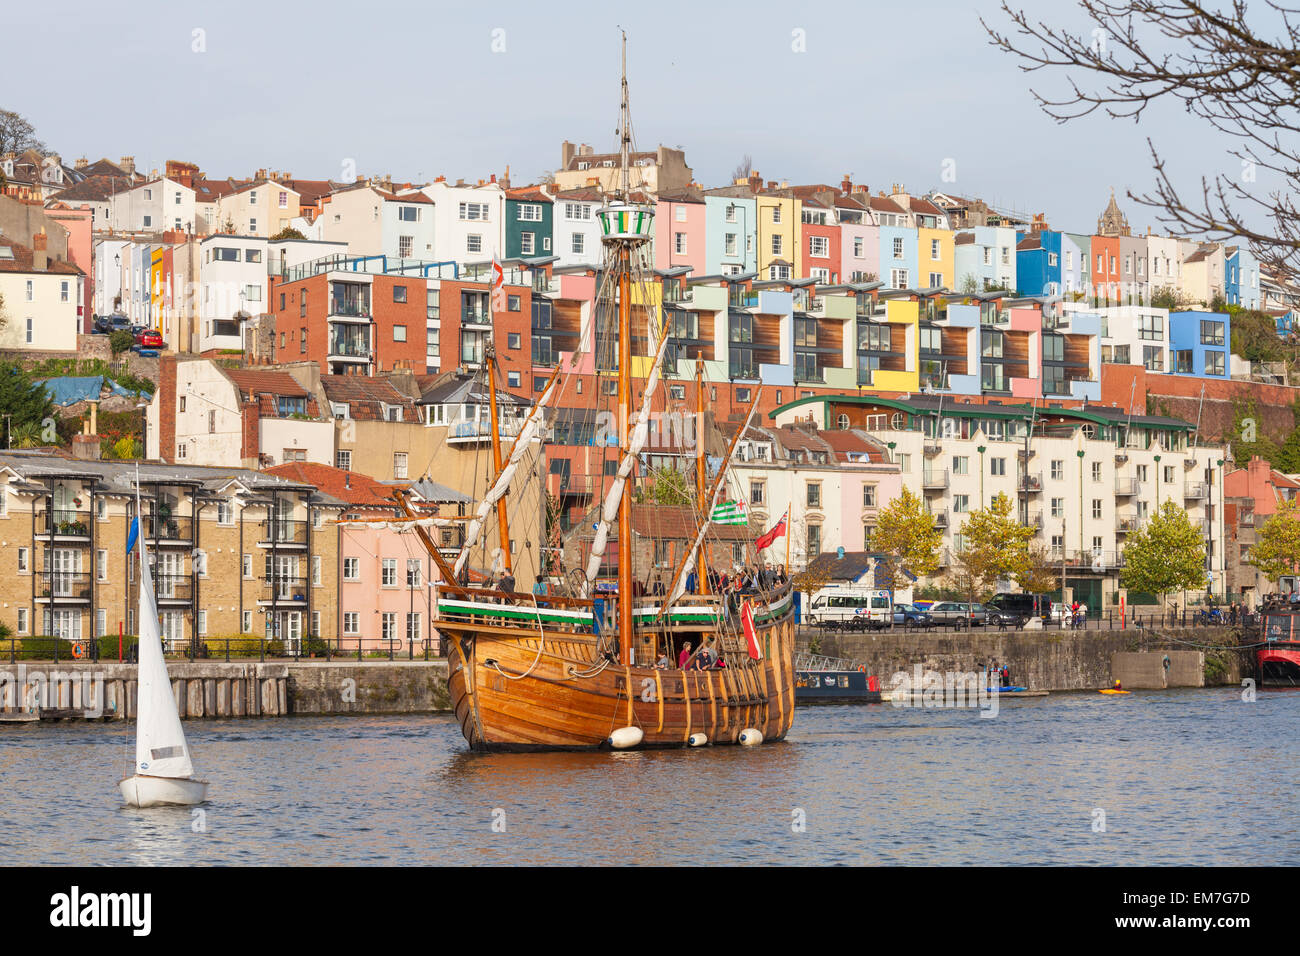 The Matthew seen sailing past the colourful houses of Hotwells in Bristol - Stock Image